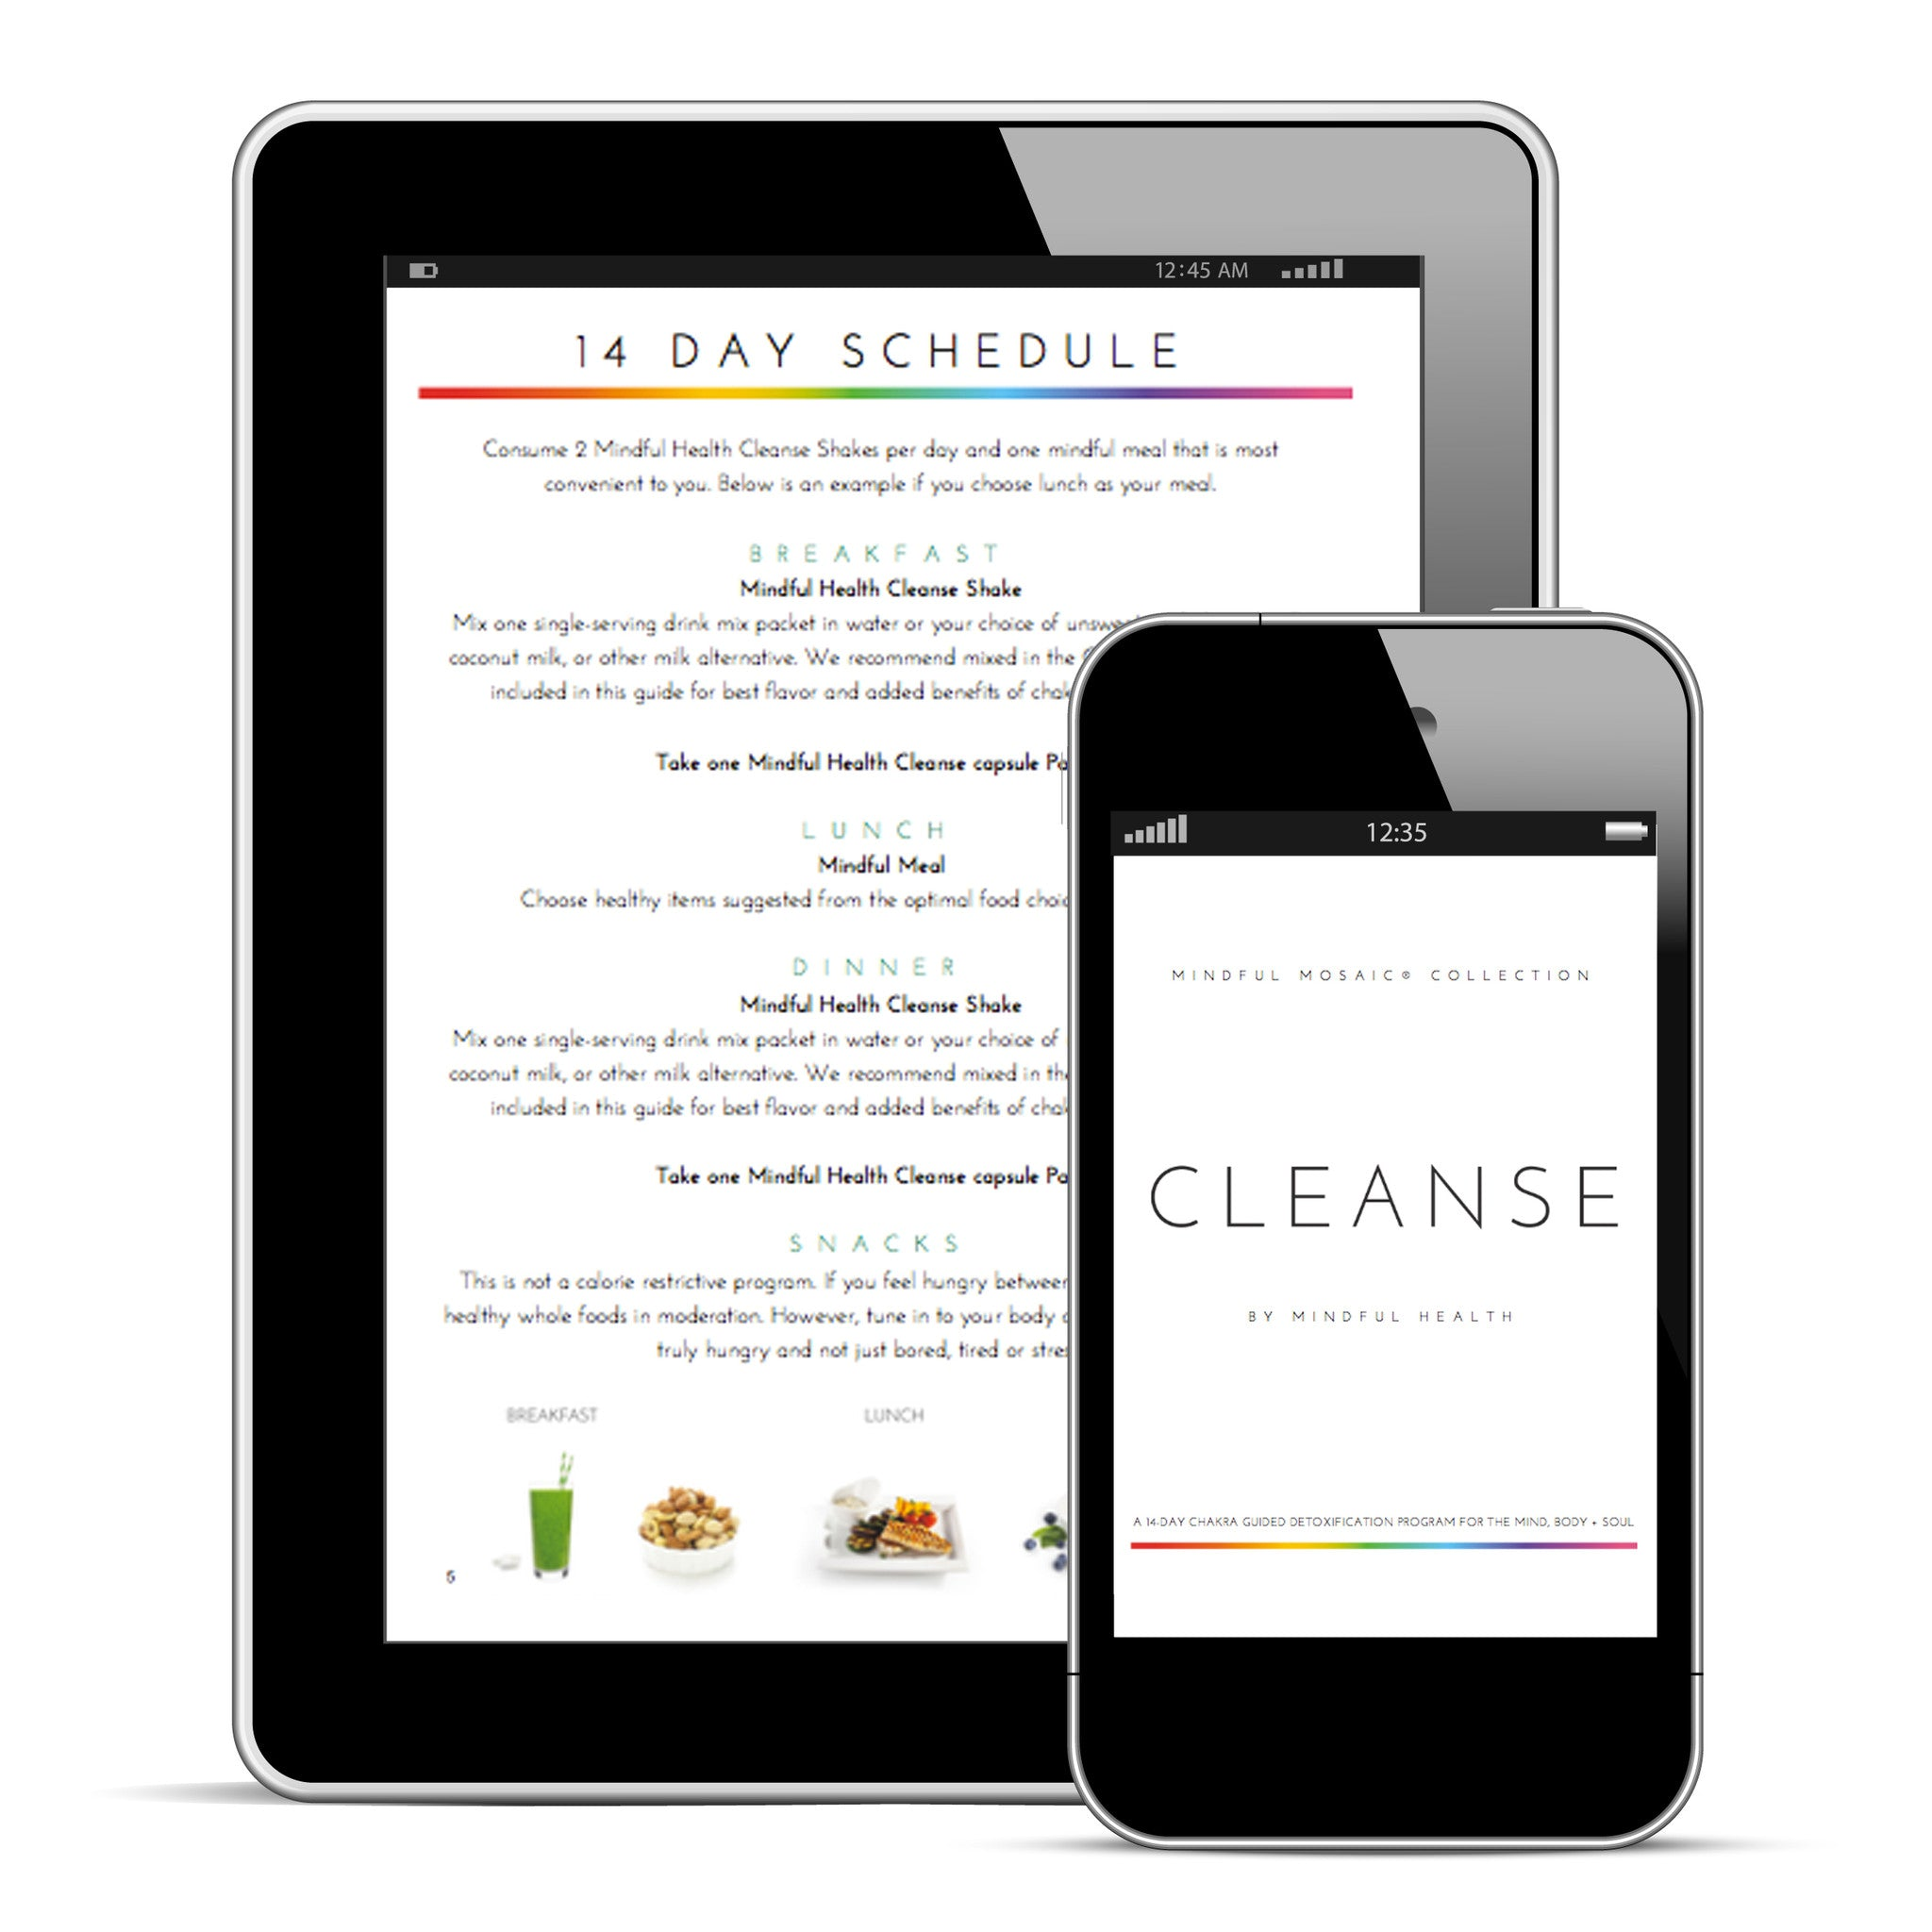 CLEANSE by Mindful Health